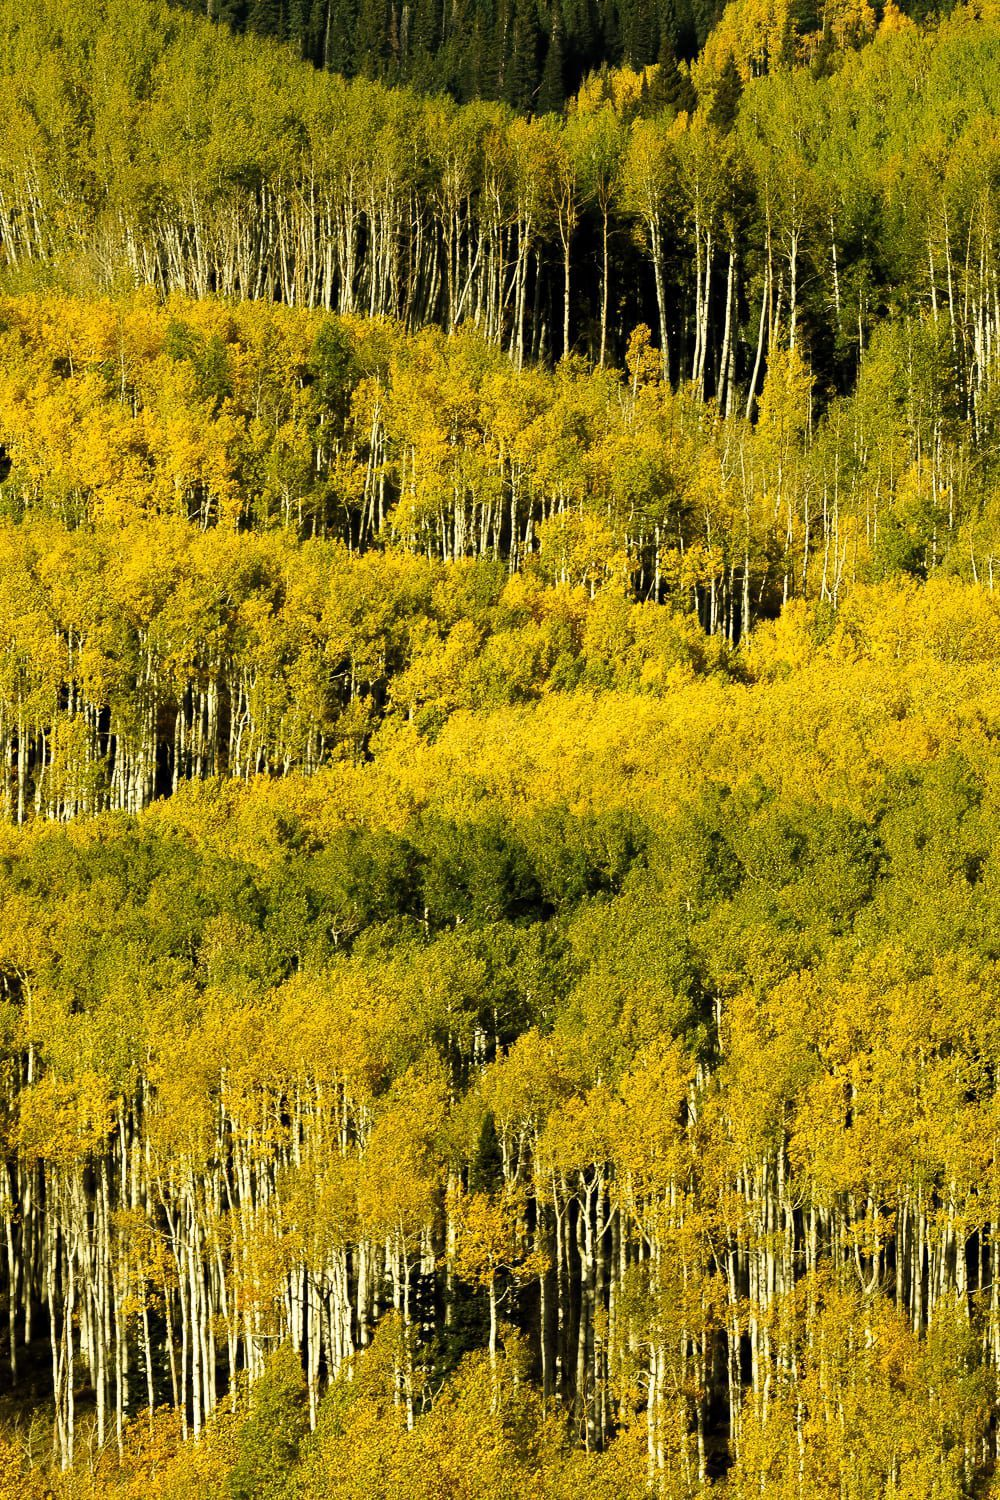 Layers of green and gold aspen along with pine trees on a mountainside.